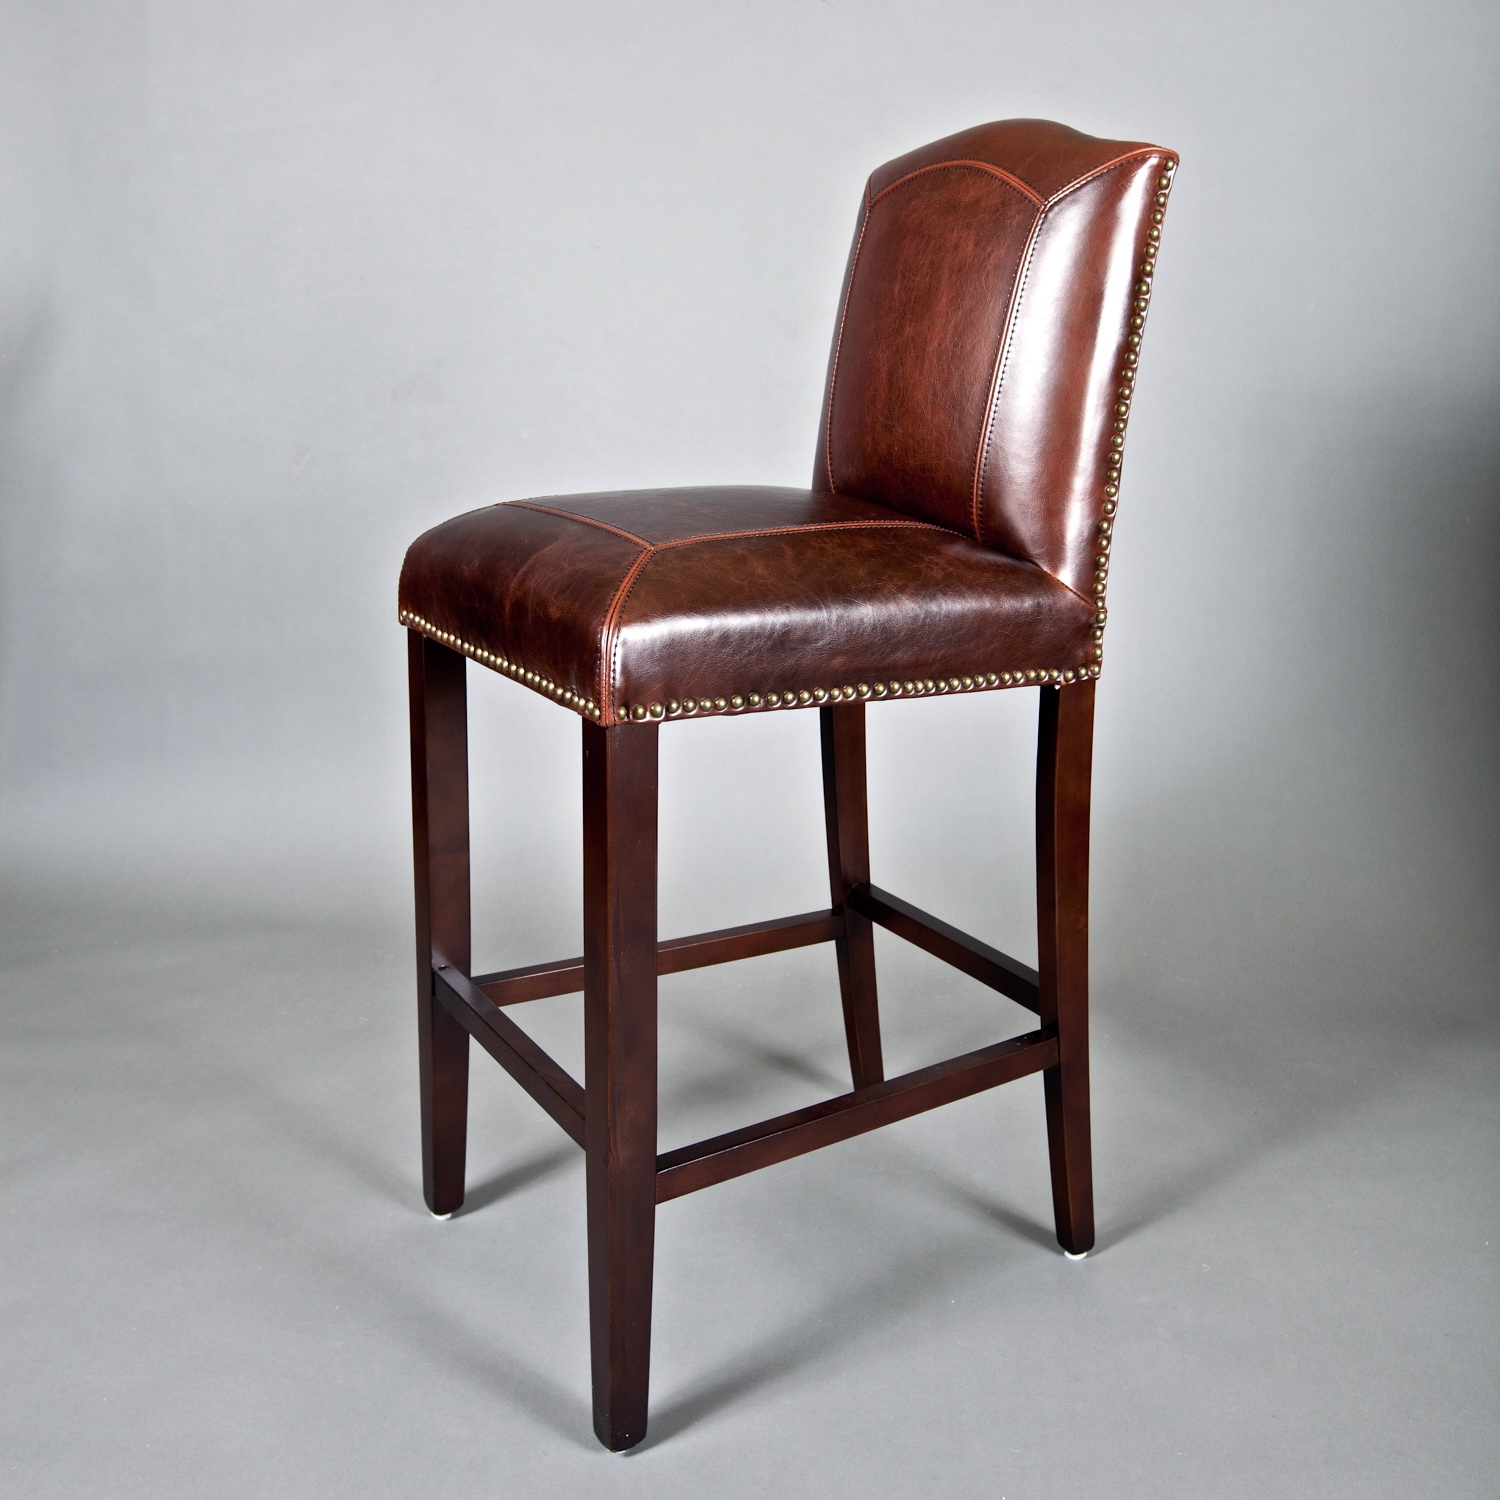 Monroe Leather Bar Stool   Overstock Shopping   Great ...